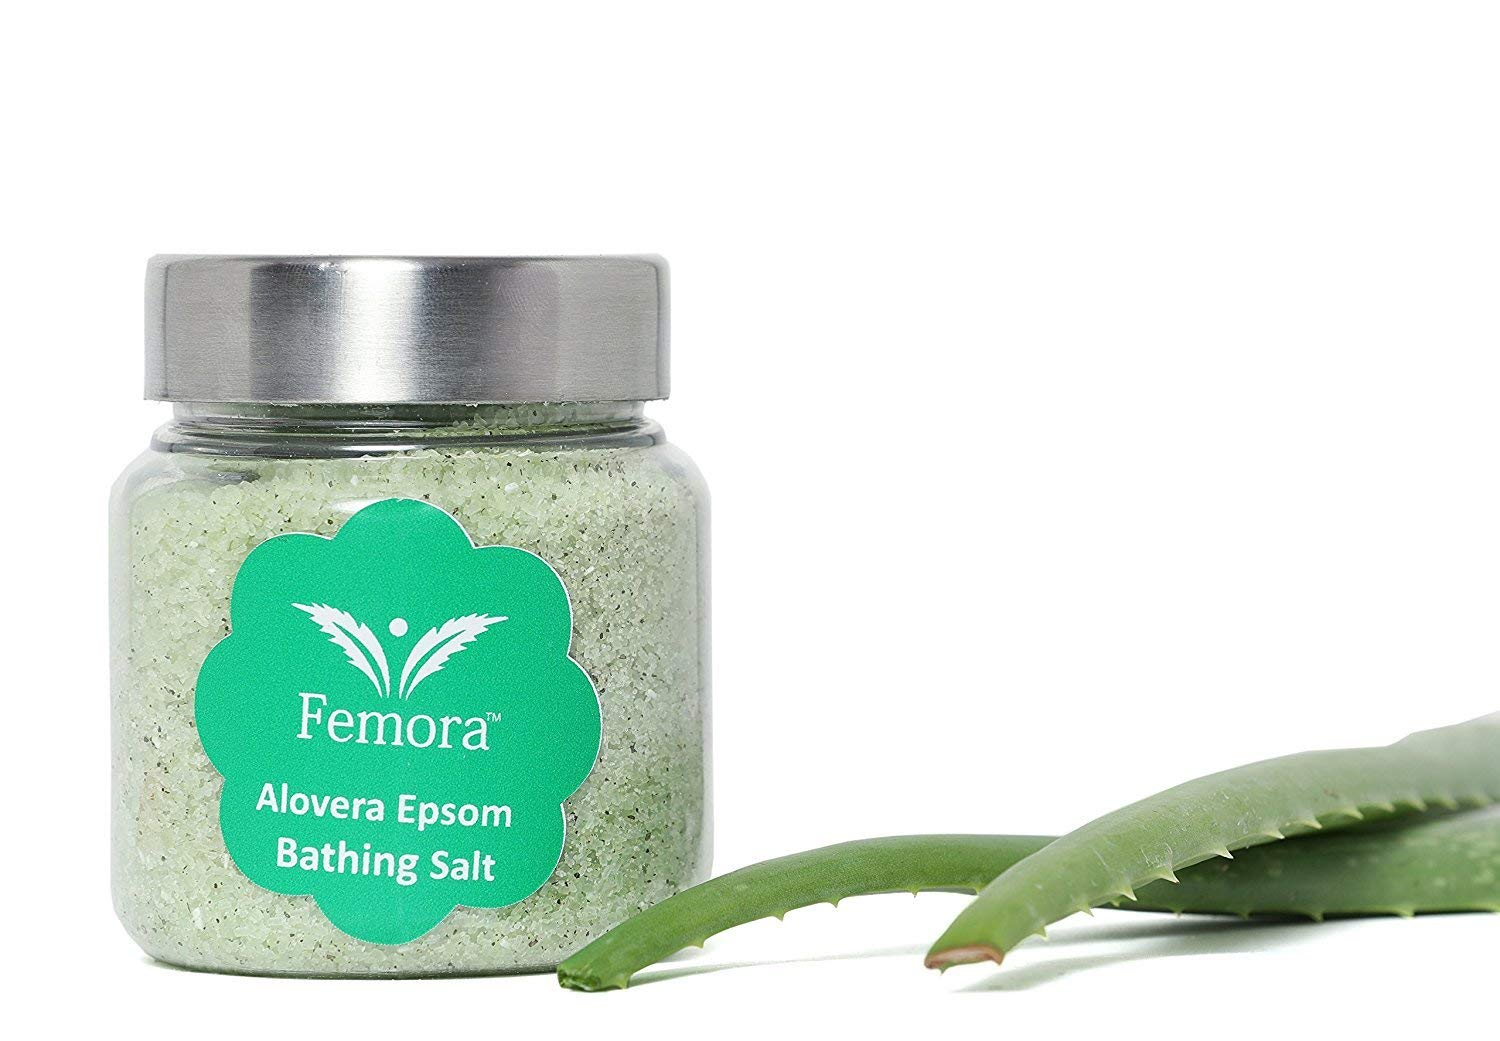 Femora Natural Aloe Vera Flavored Bathing Epsom Salt - 1000 gms